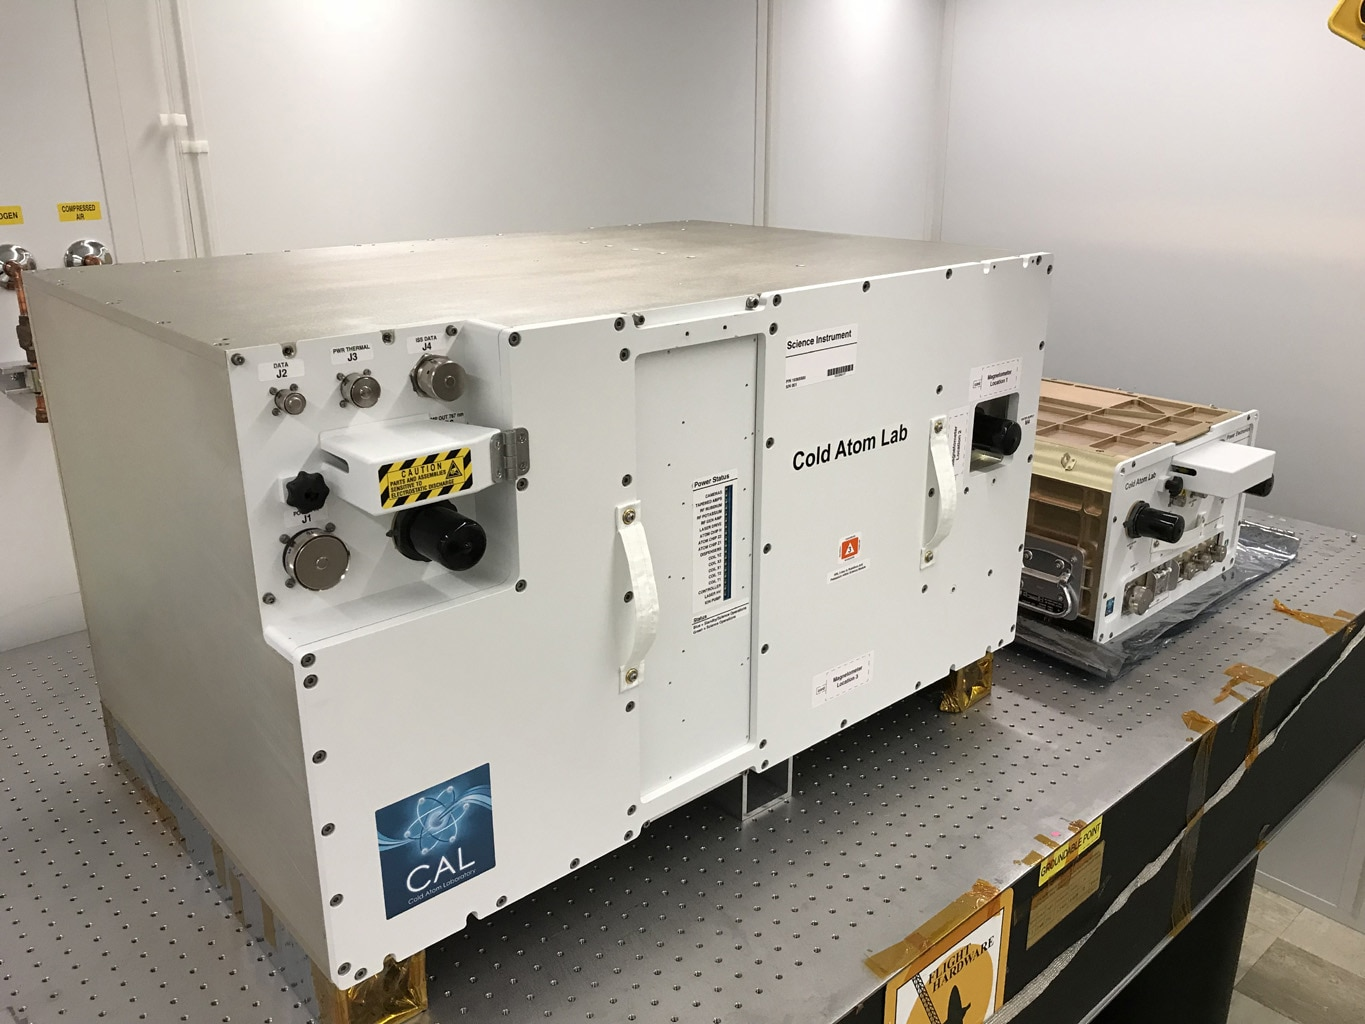 The Cold Atom Laboratory (CAL), which consists of two standardized containers that will be installed on the International Space Station. - Image Credit: NASA/JPL-Caltech/Tyler Winn